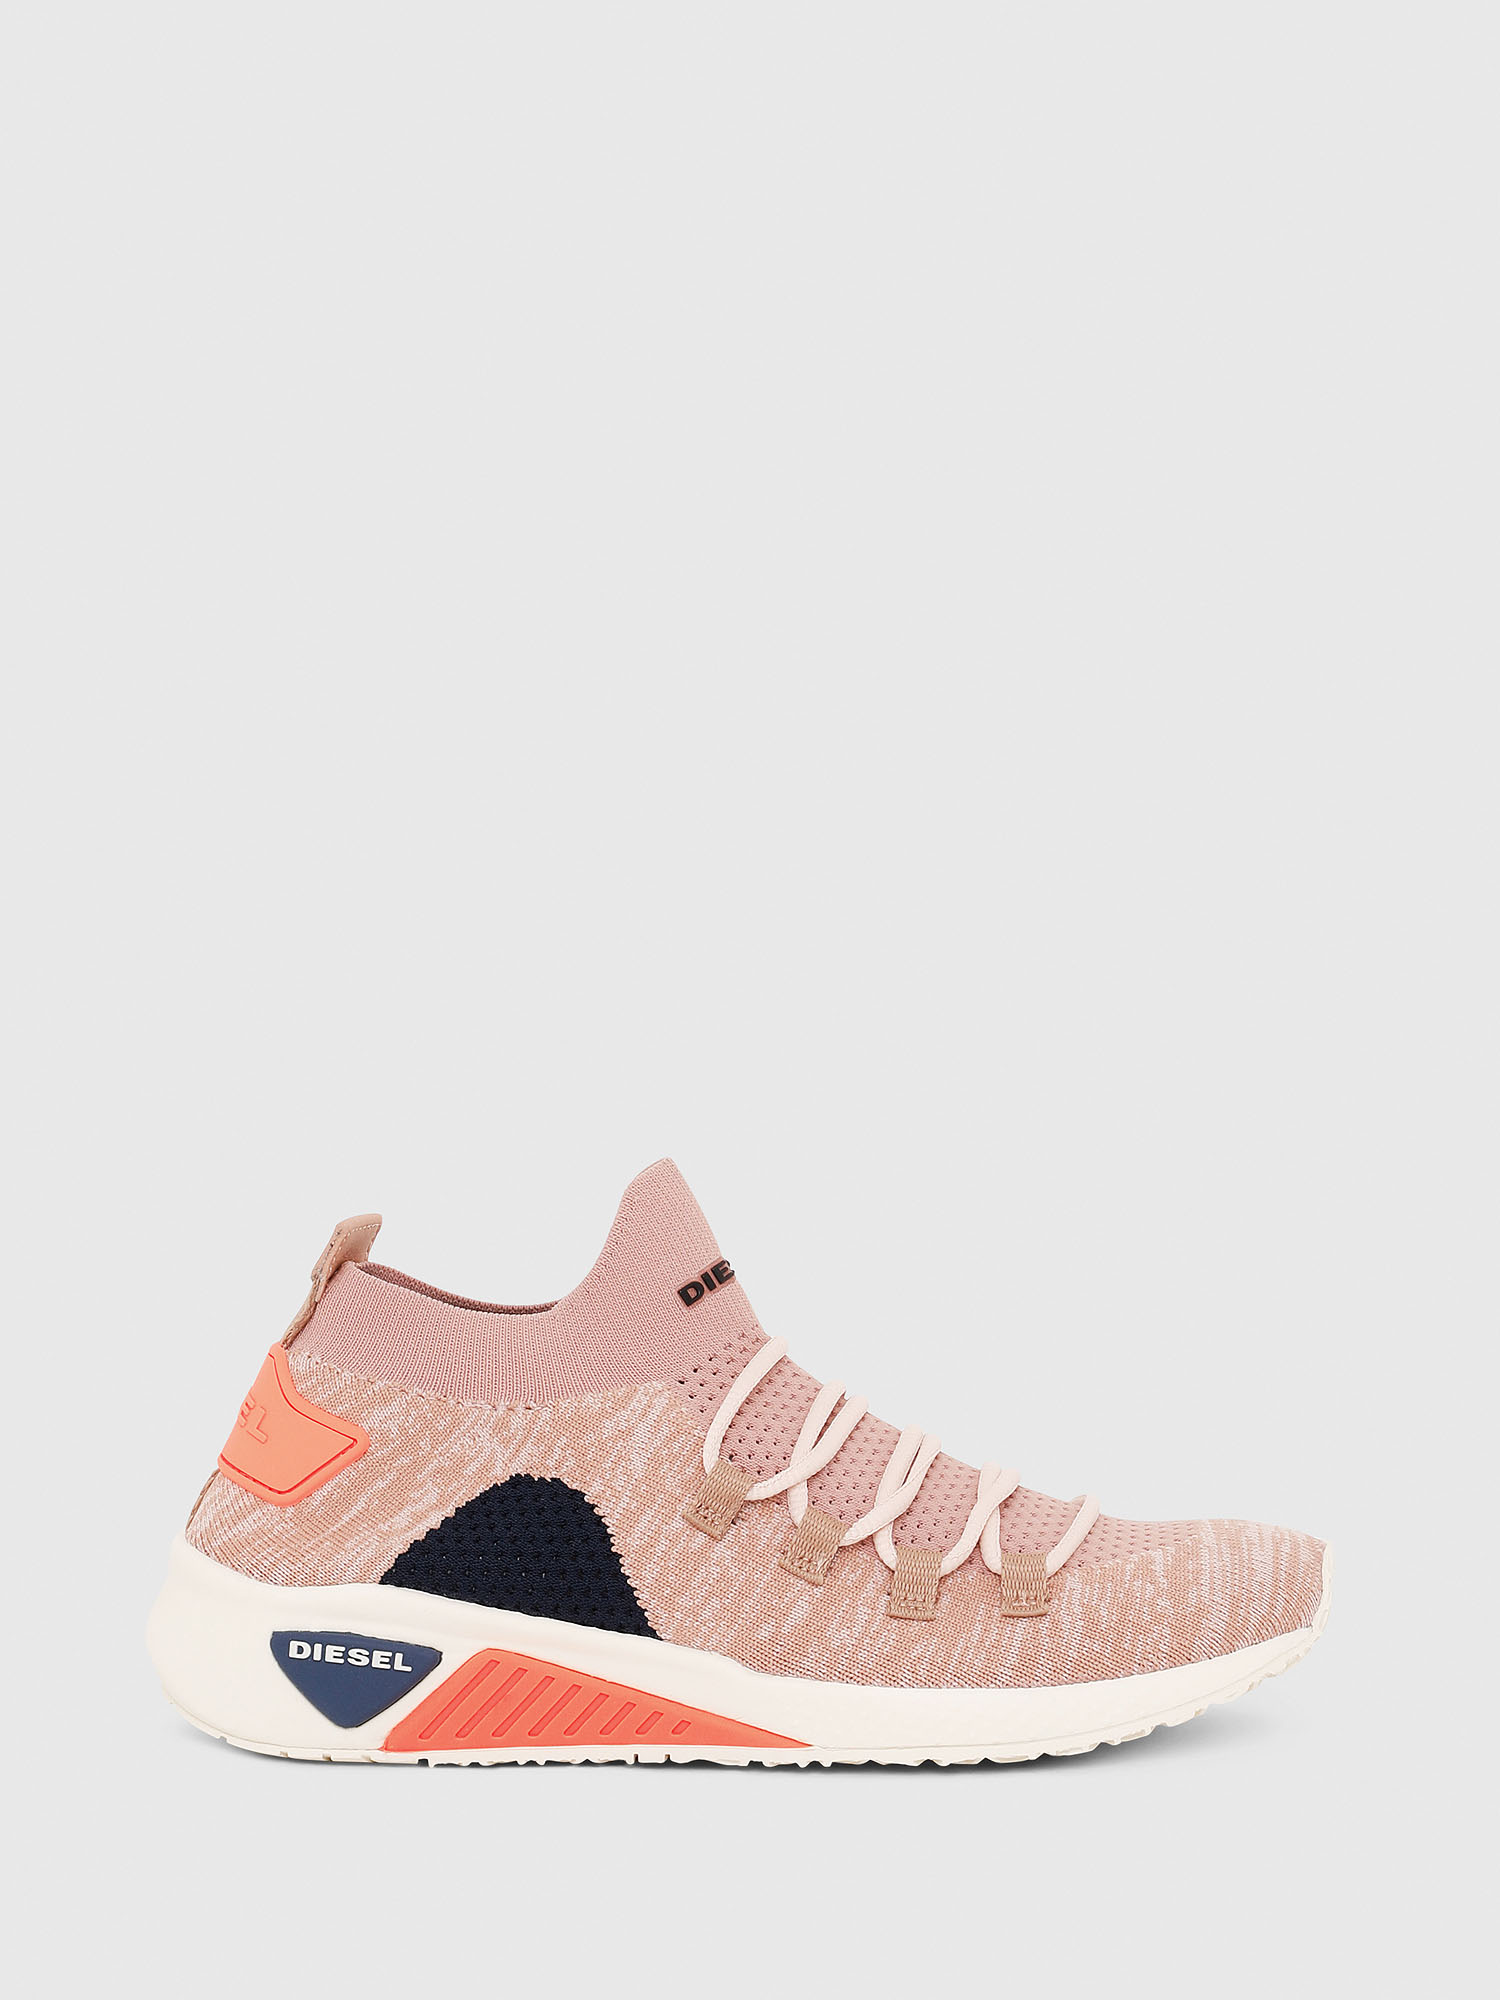 Diesel - S-KB ATHL LACE W,  - Sneakers - Image 1